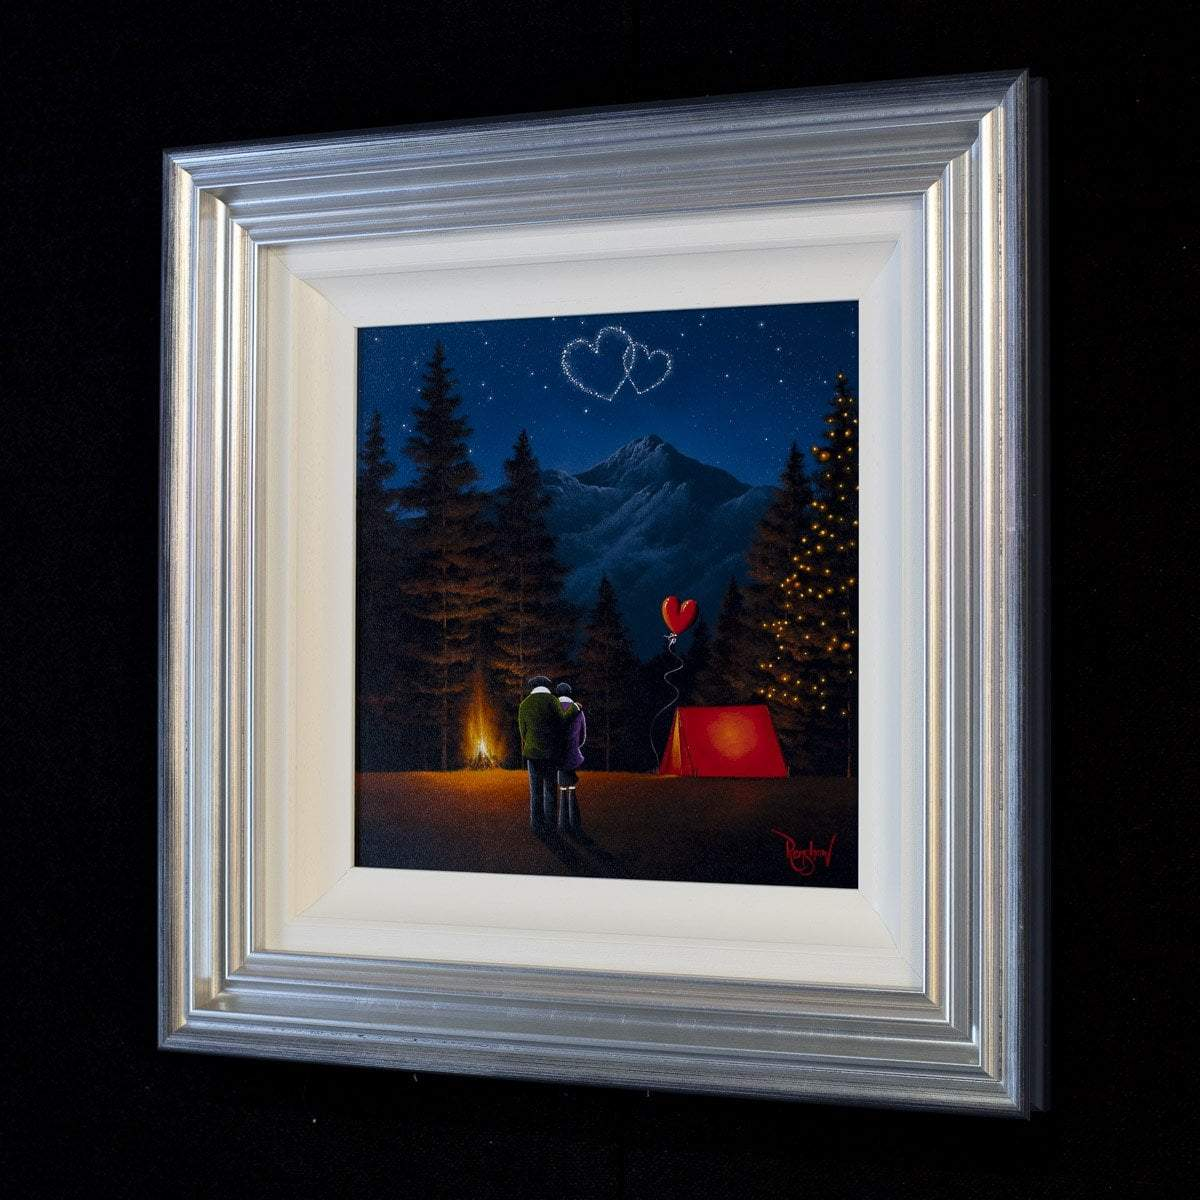 A Night Like This - Original - SOLD David Renshaw Framed